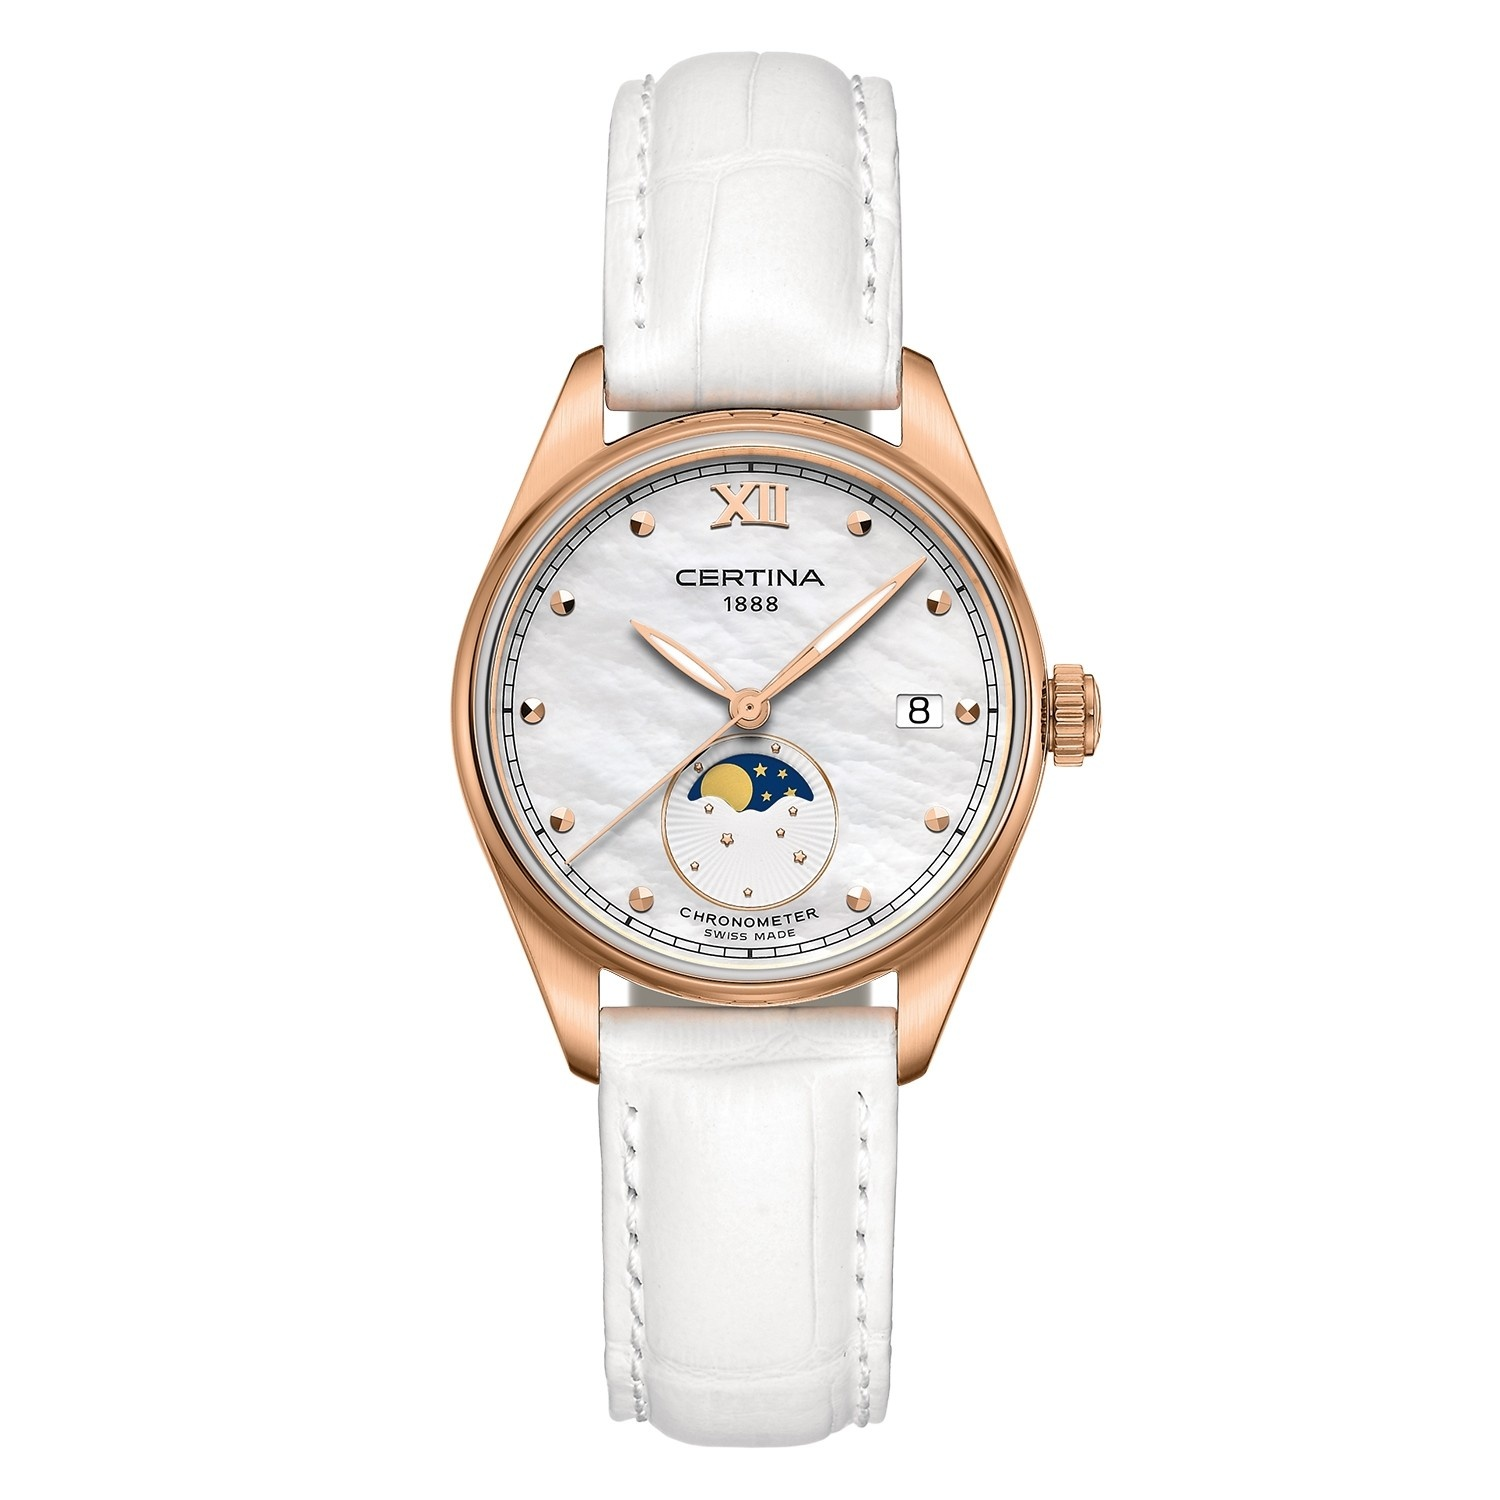 Certina Certina DS-8 Lady Moon Phase, 32,5mm rosé kleurige wijzer met wit leren band